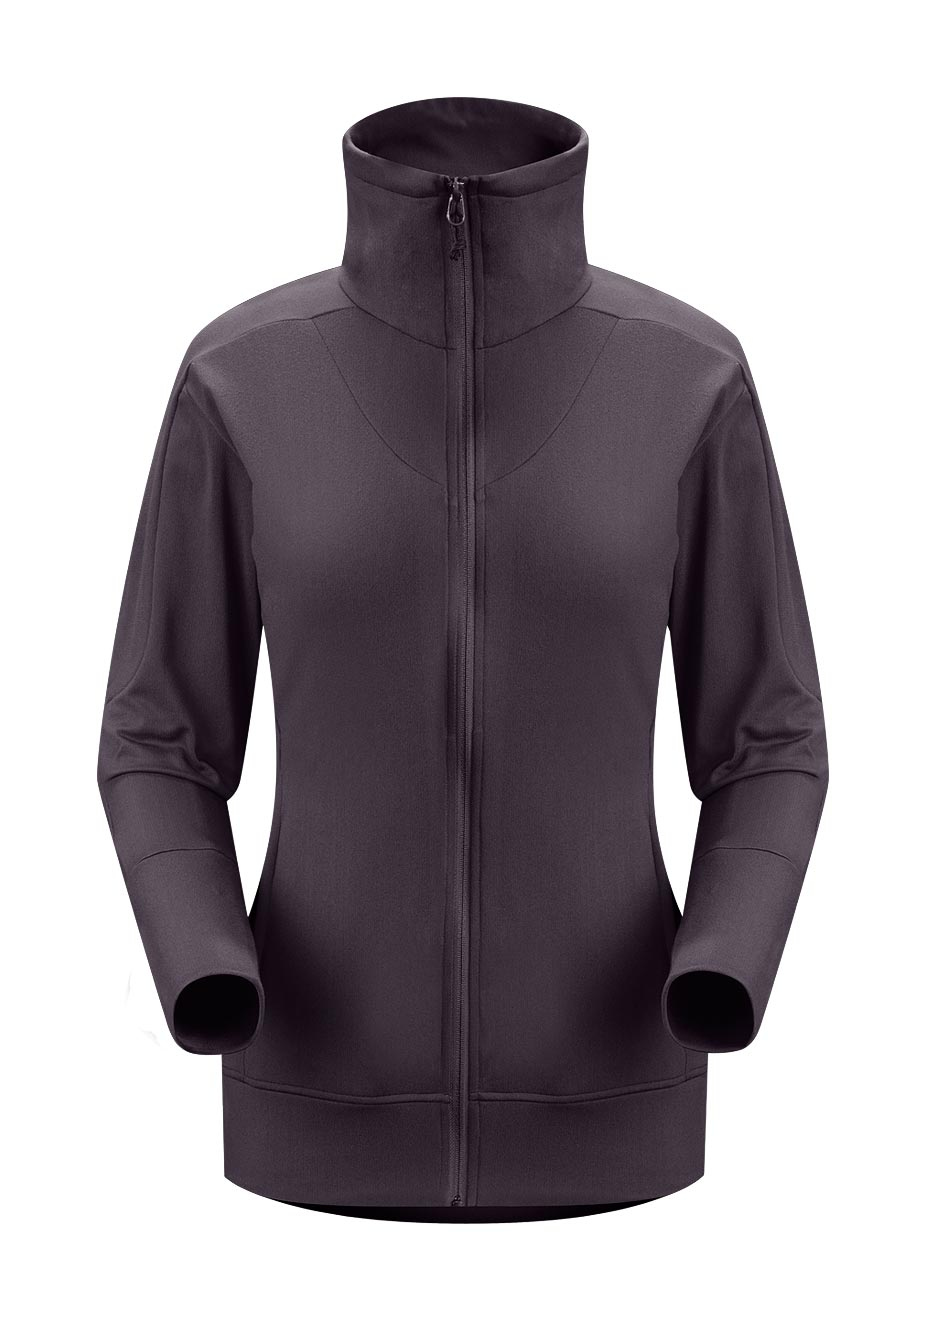 Arcteryx Graphite Solita Jacket